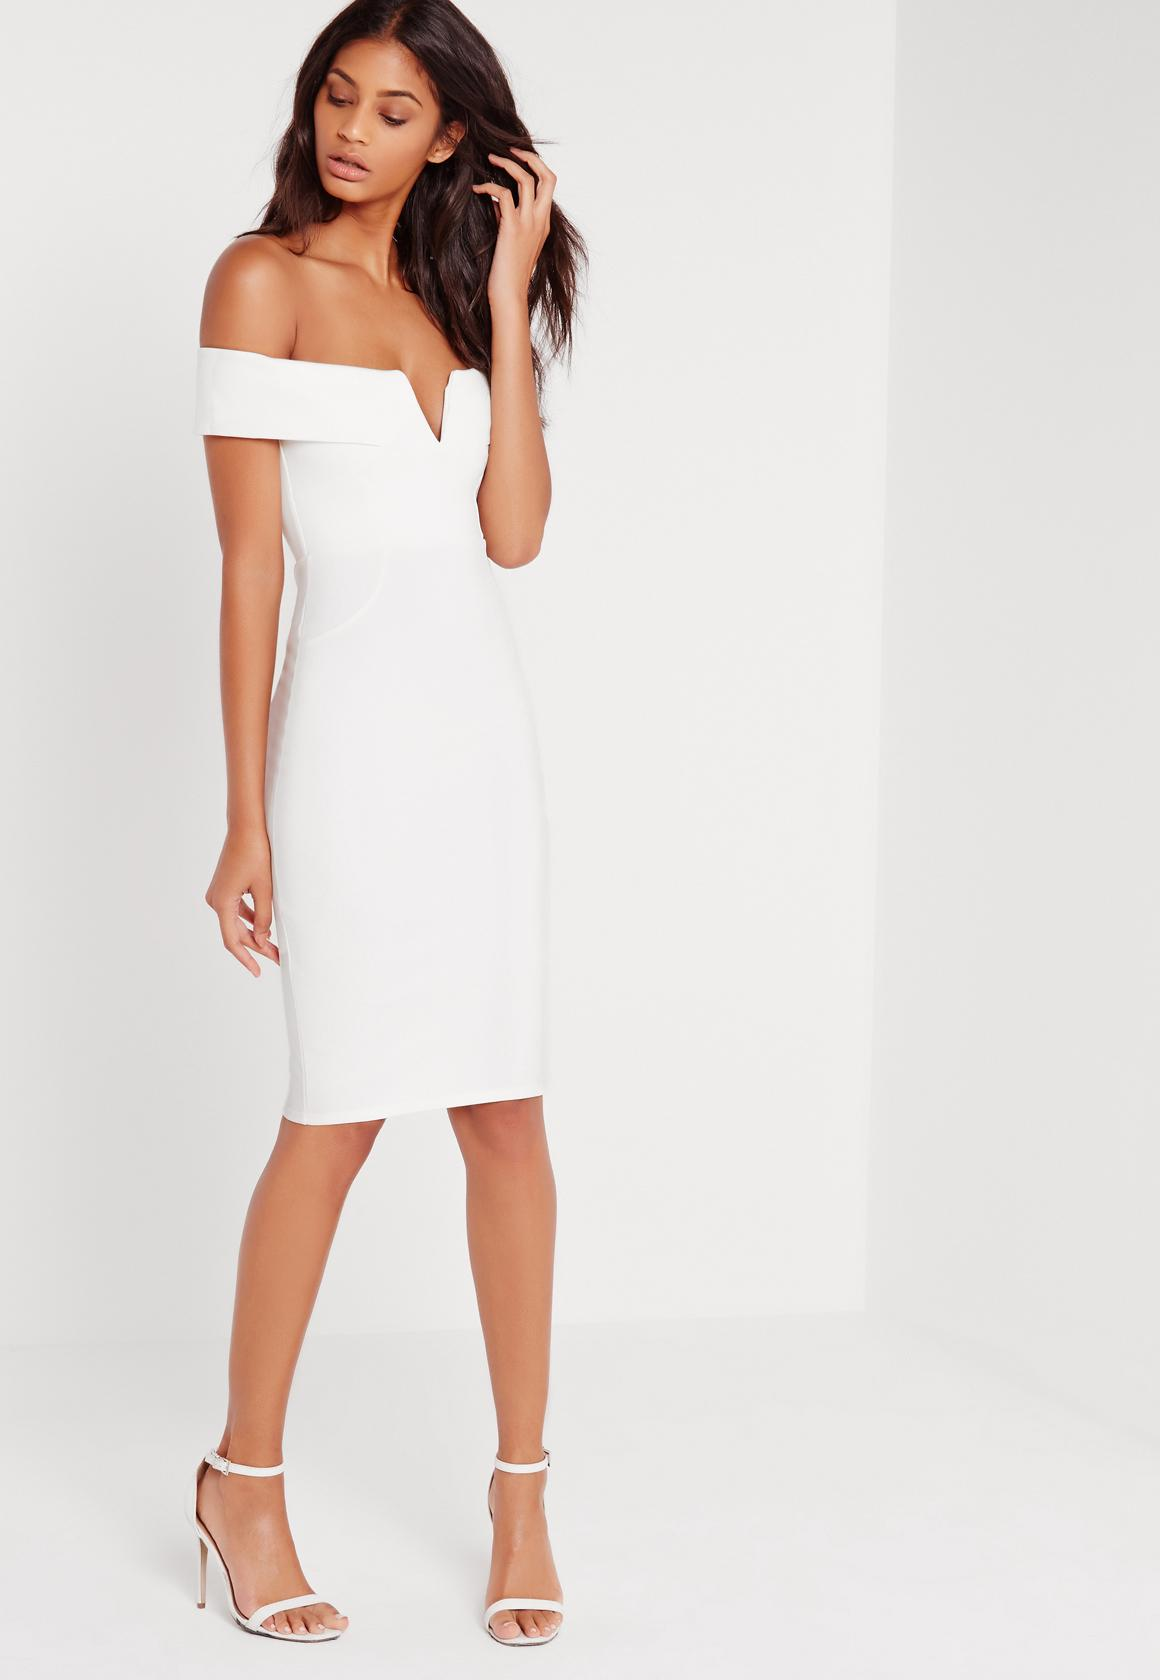 White Midi Evening Dresses